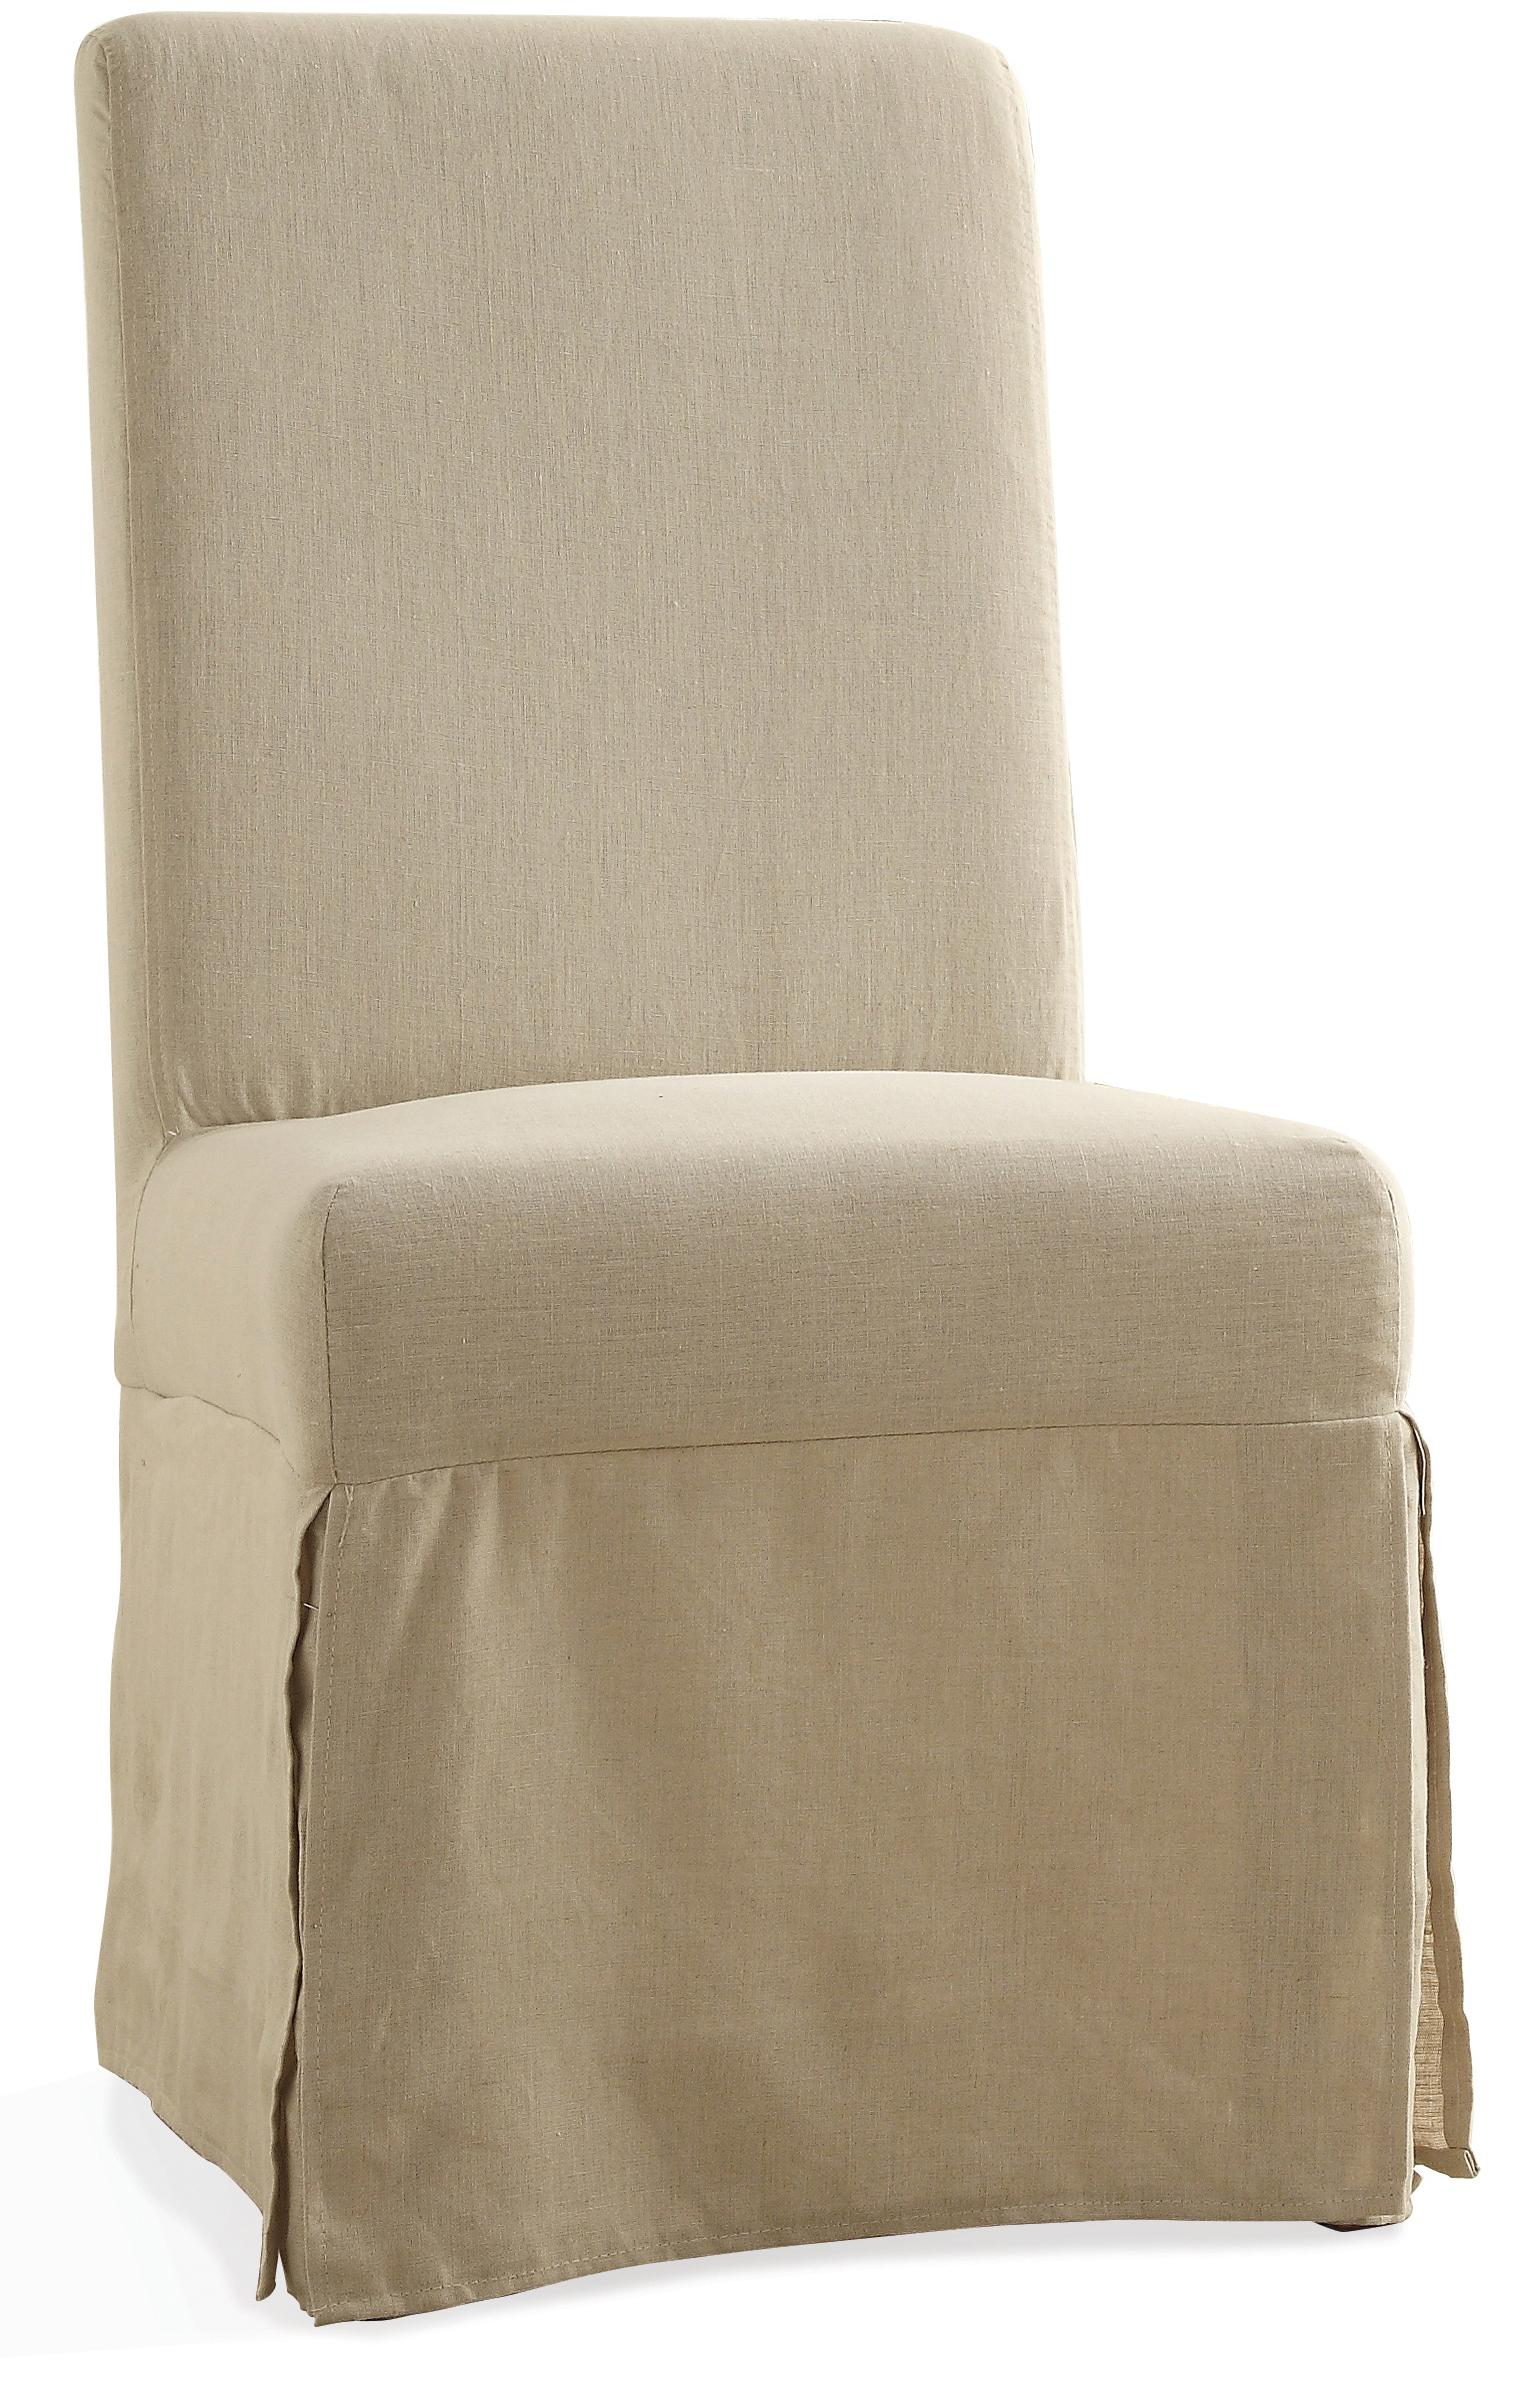 parson chairs edo posture chair riverside furniture mix n match 36964 slipcover s